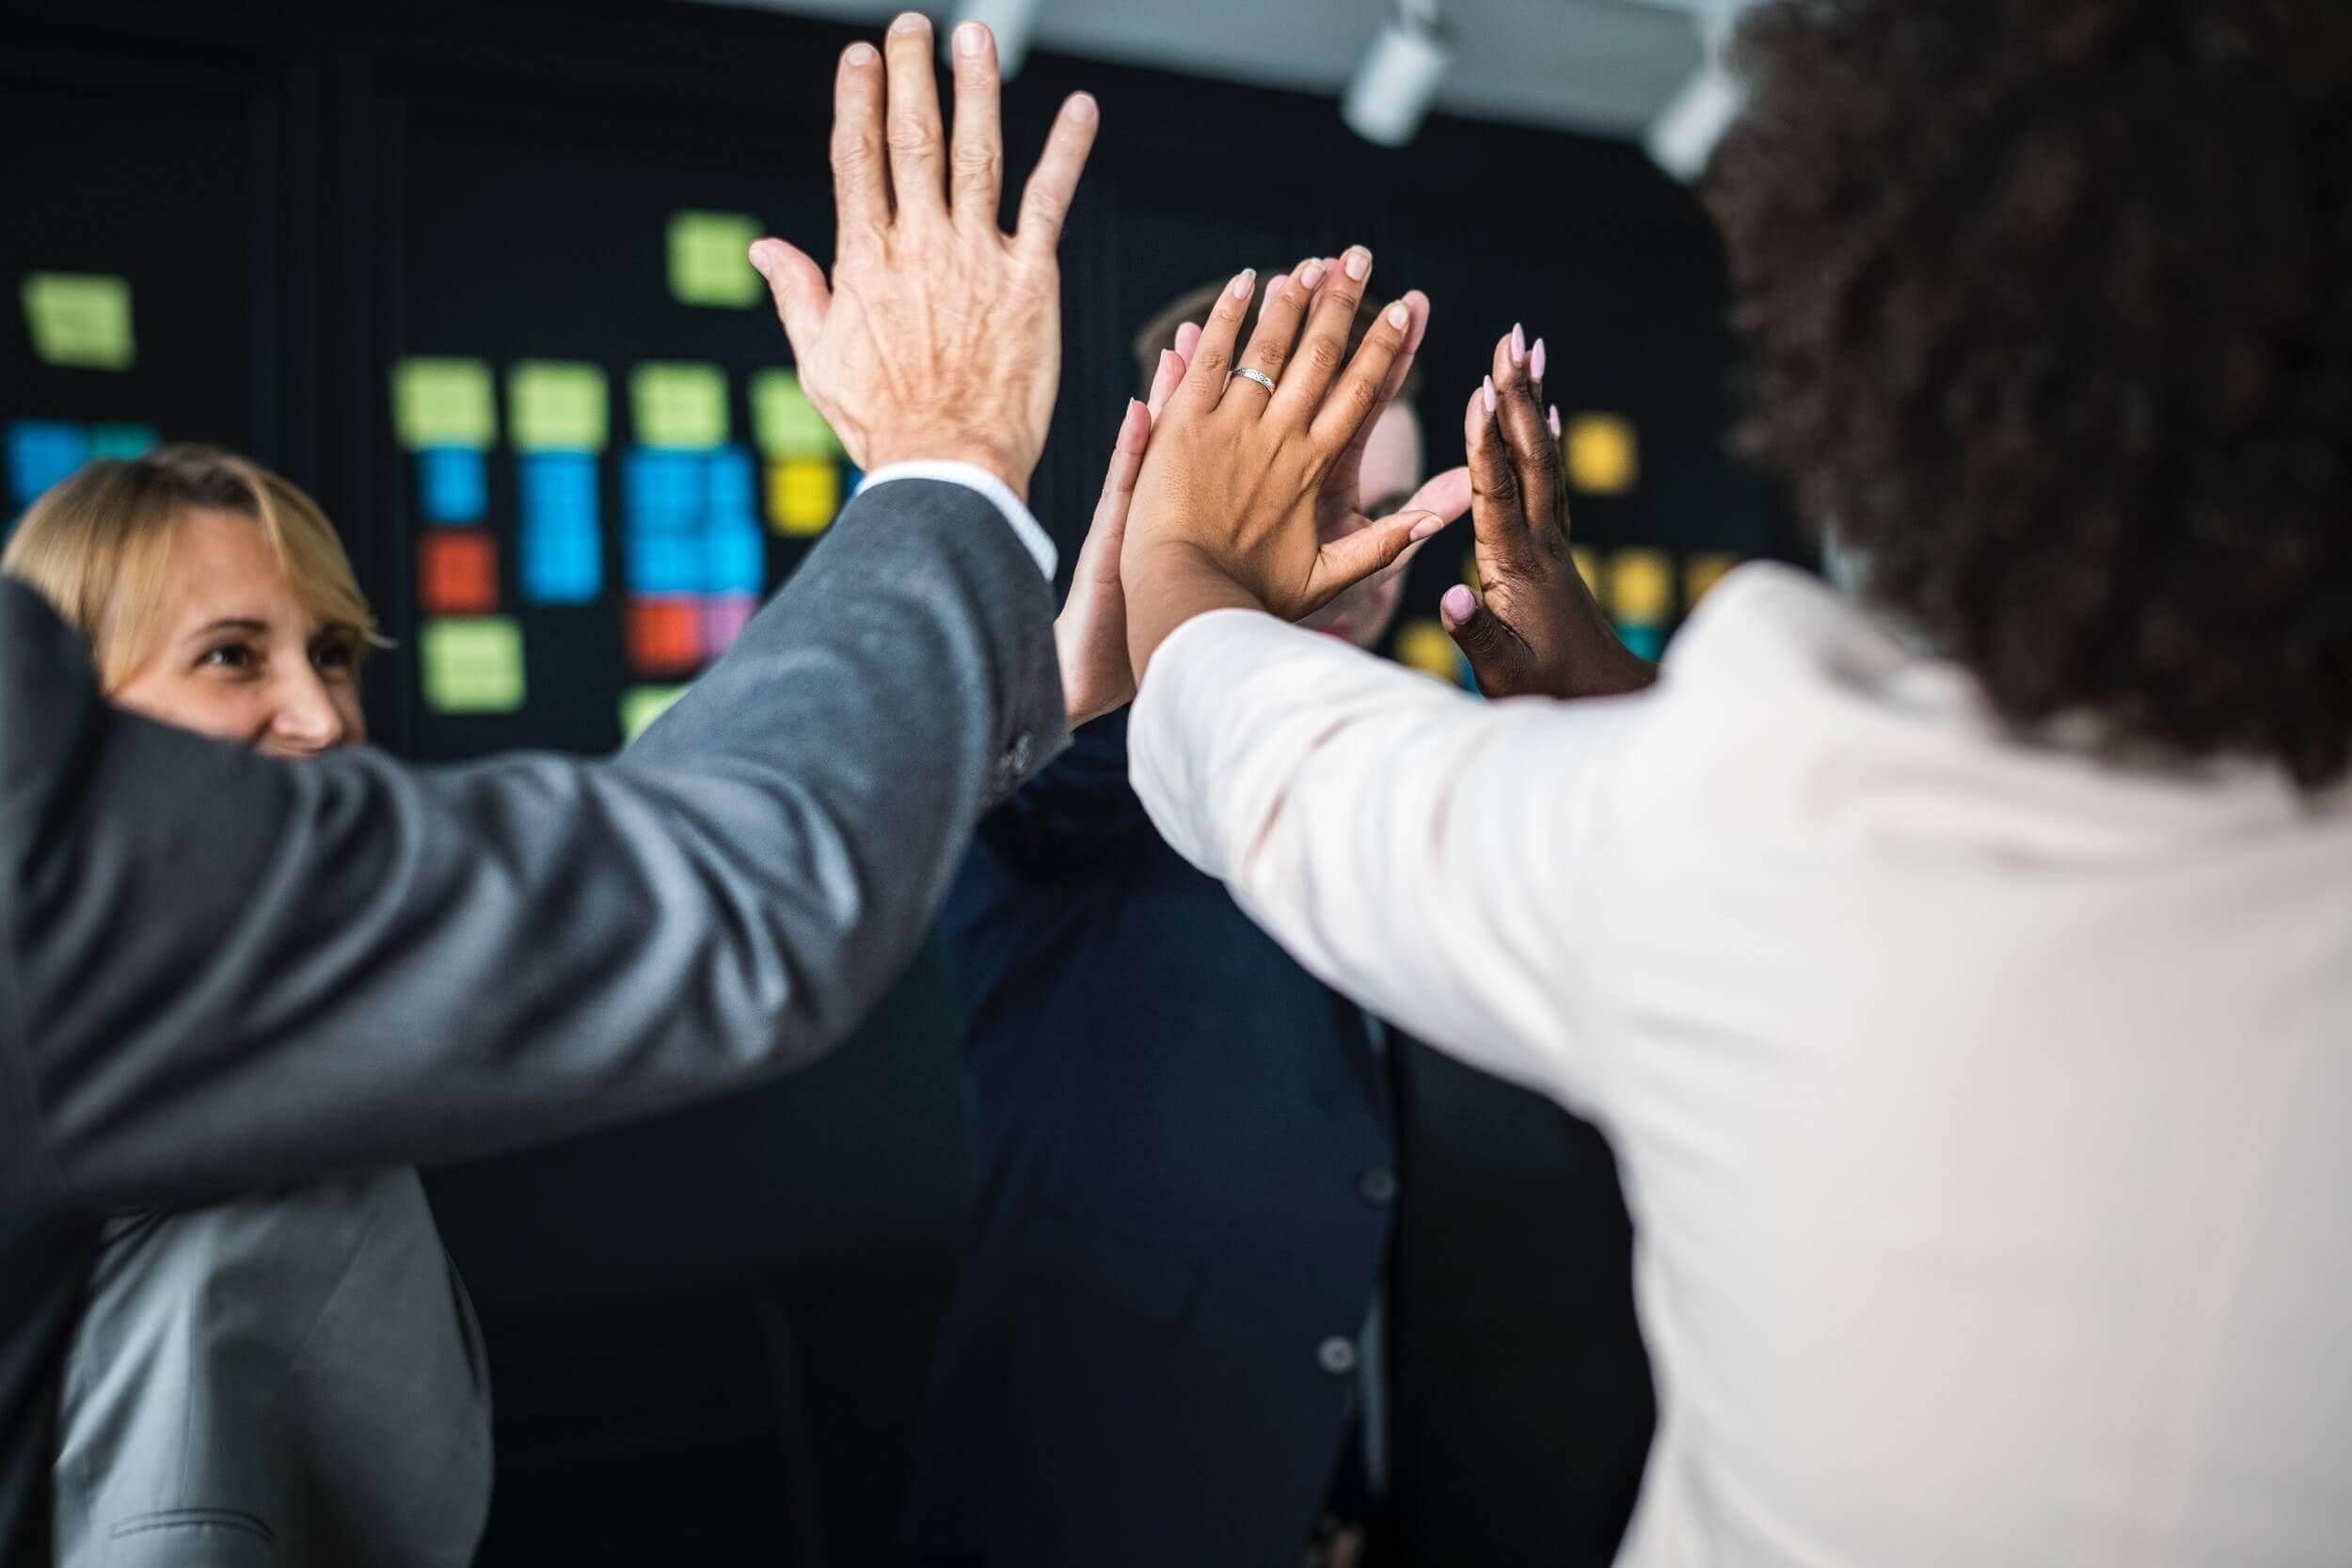 project managers build trust